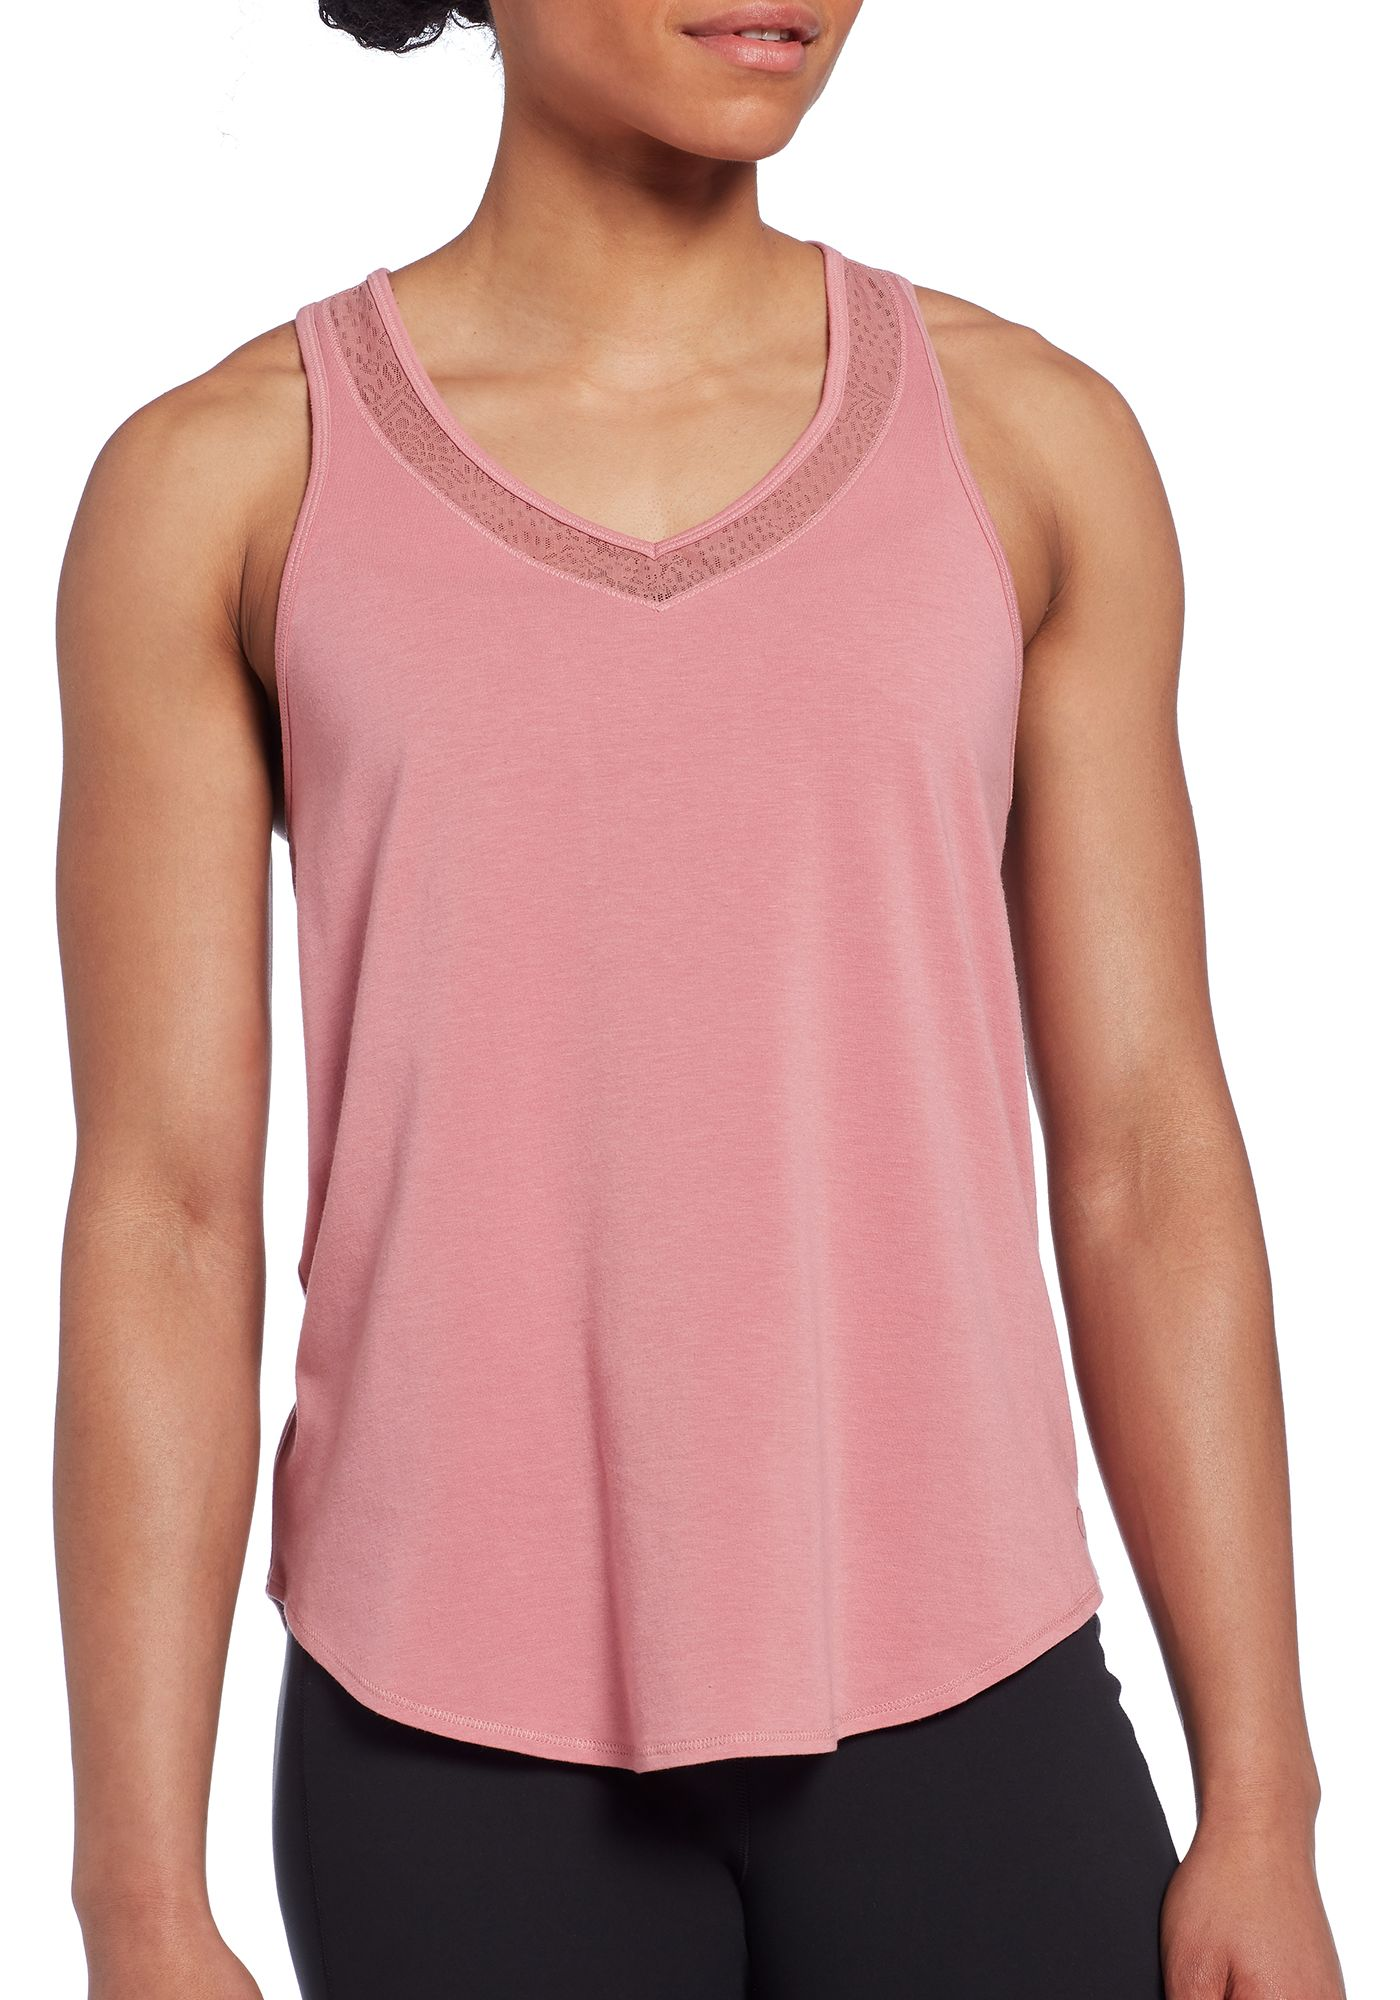 CALIA by Carrie Underwood Women's Lace Panel Tank Top